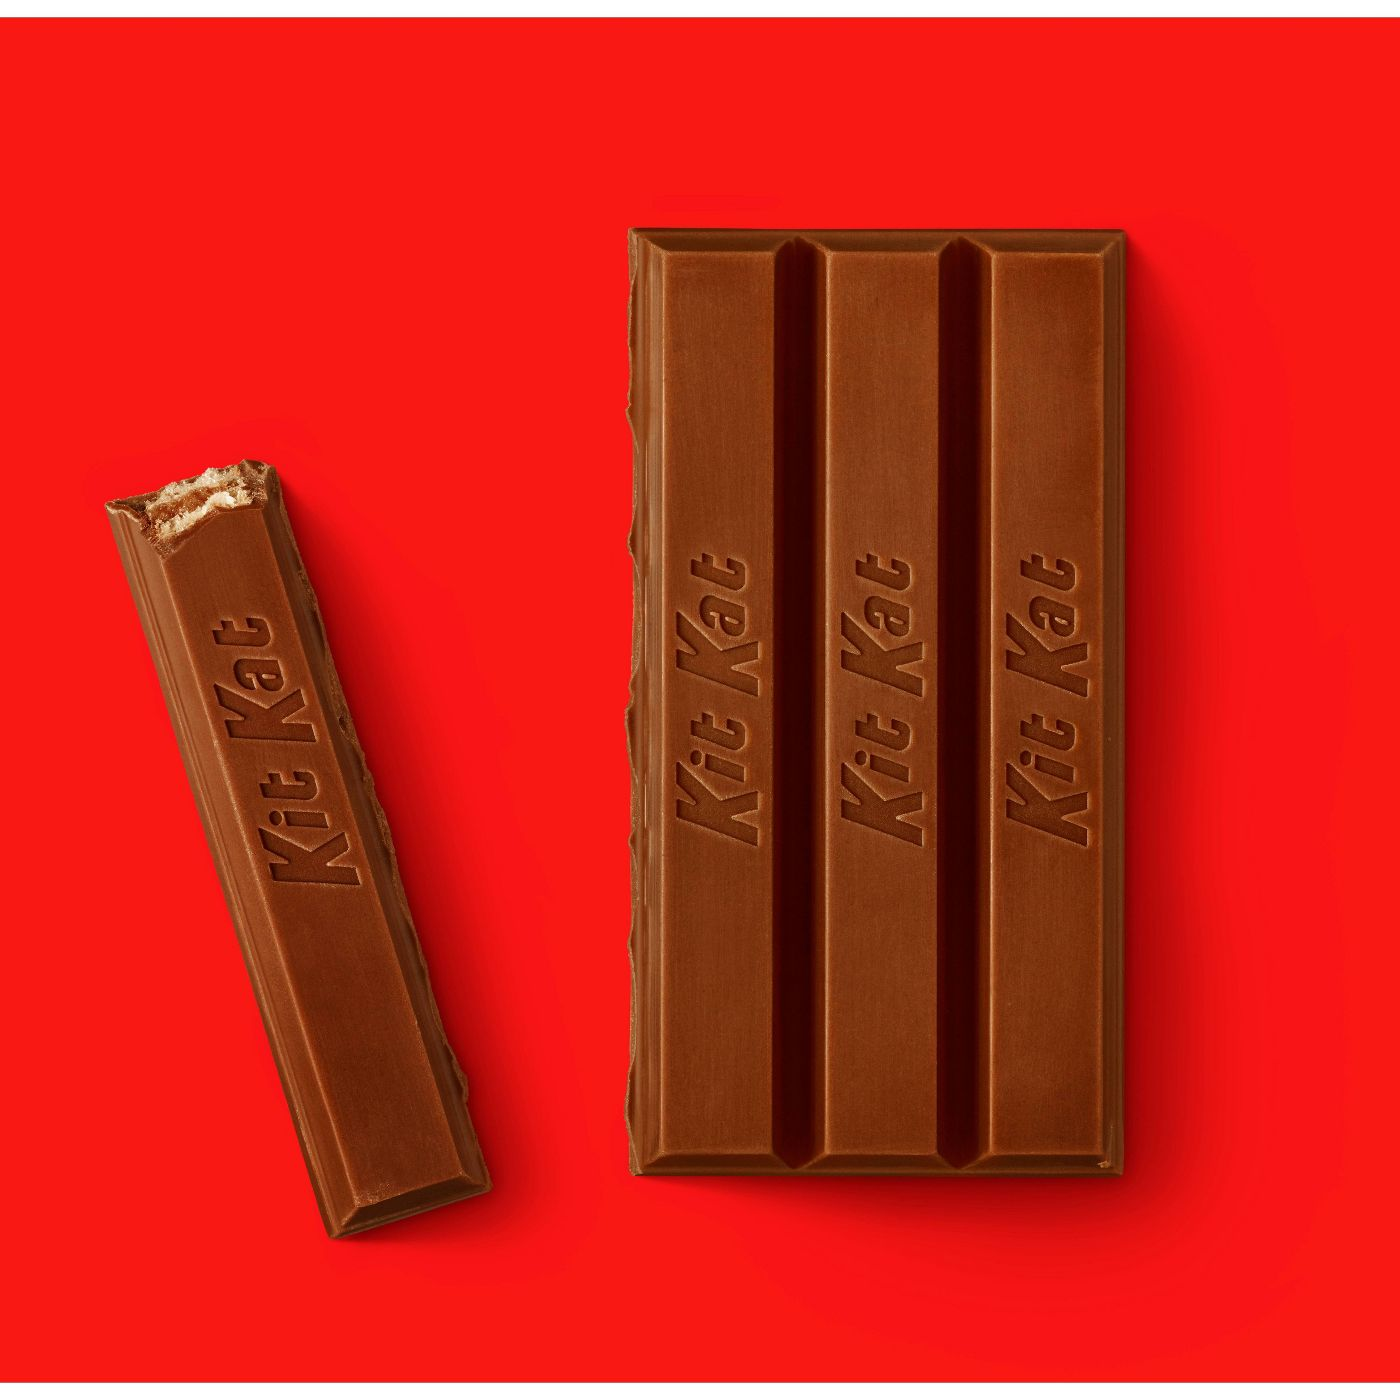 Kit Kat Full Size Candy Bars, 9oz/6ct